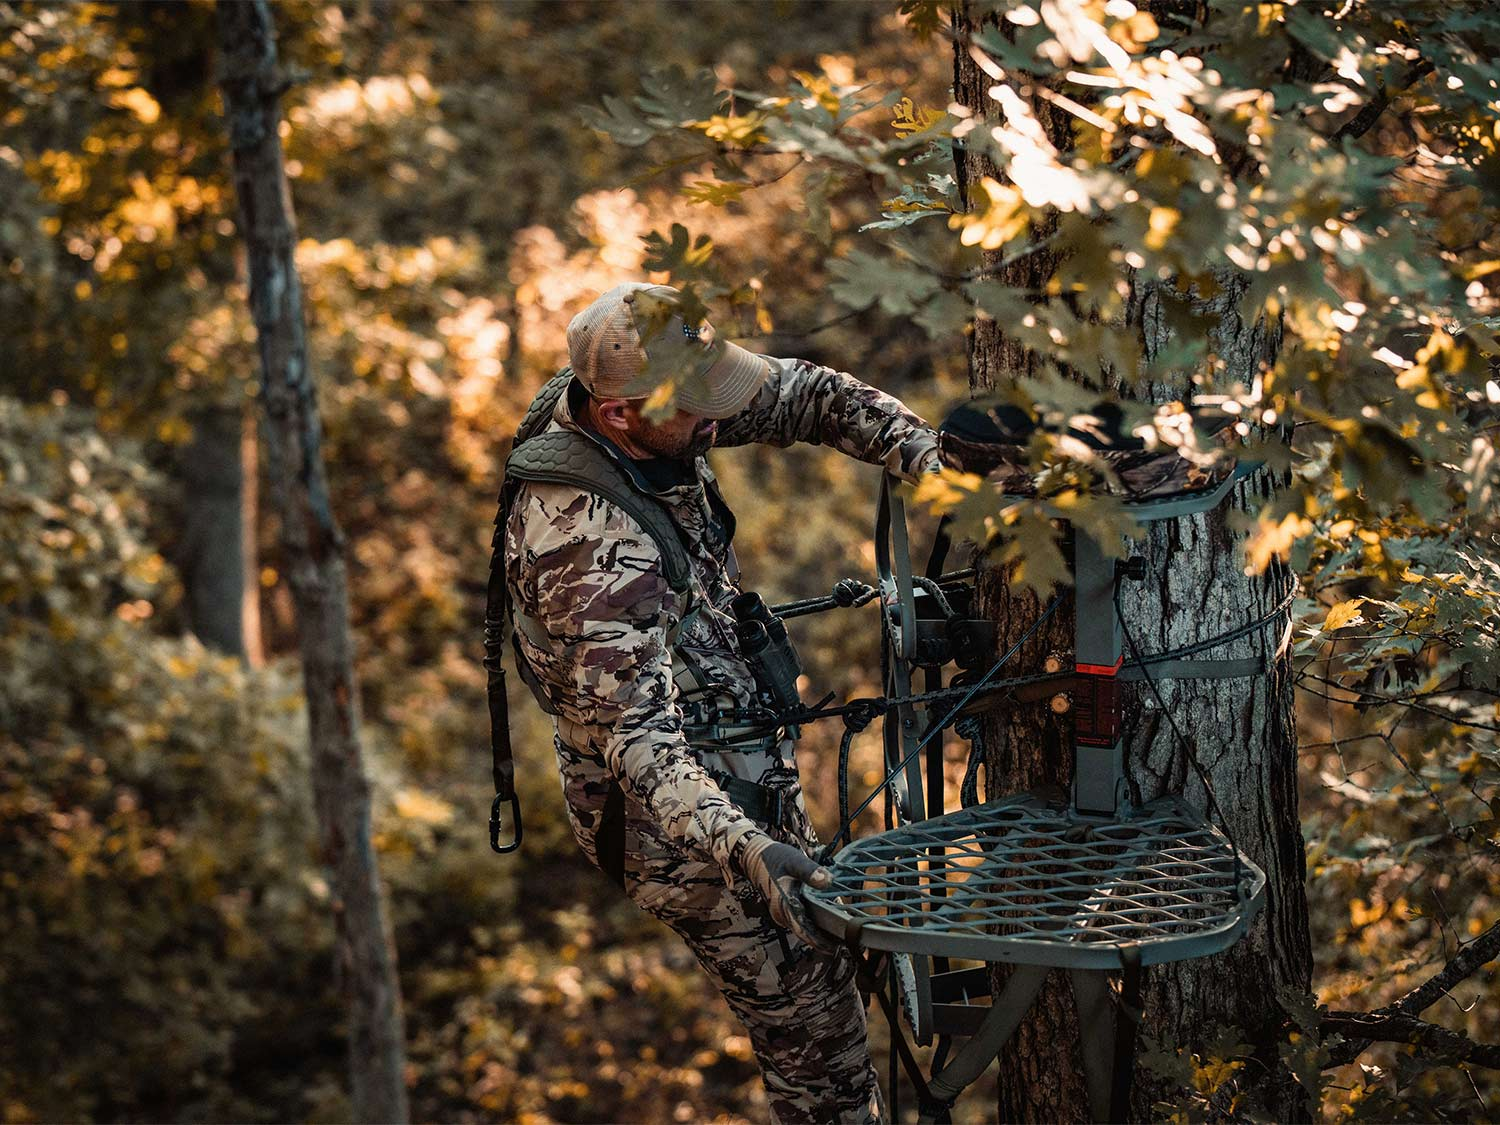 A hunter attaches a tree stand to the side of a tree.